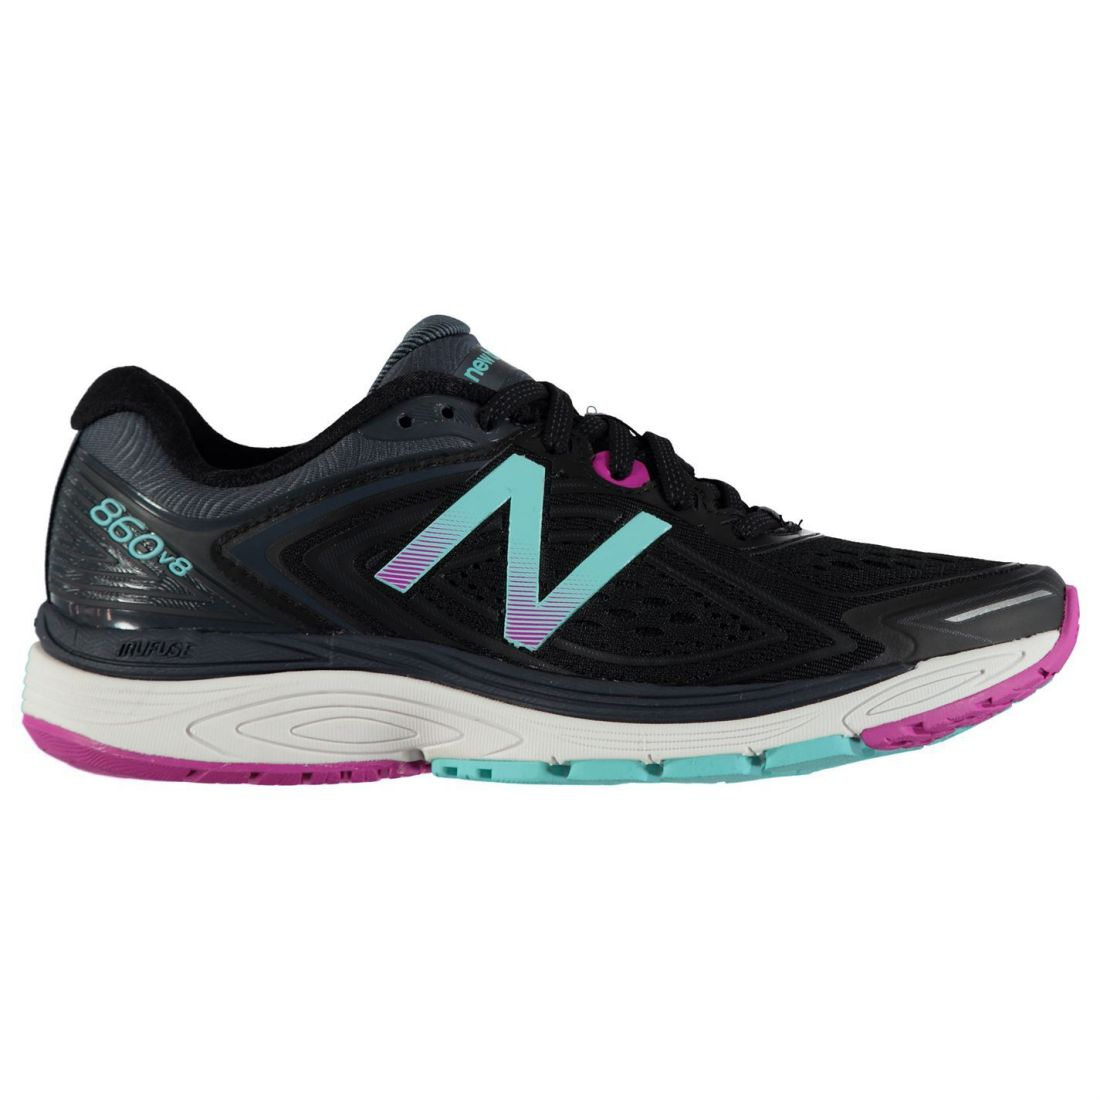 03f3ee7671edb New Balance Womens 860v8 B Running Shoes Road Mesh Upper | eBay